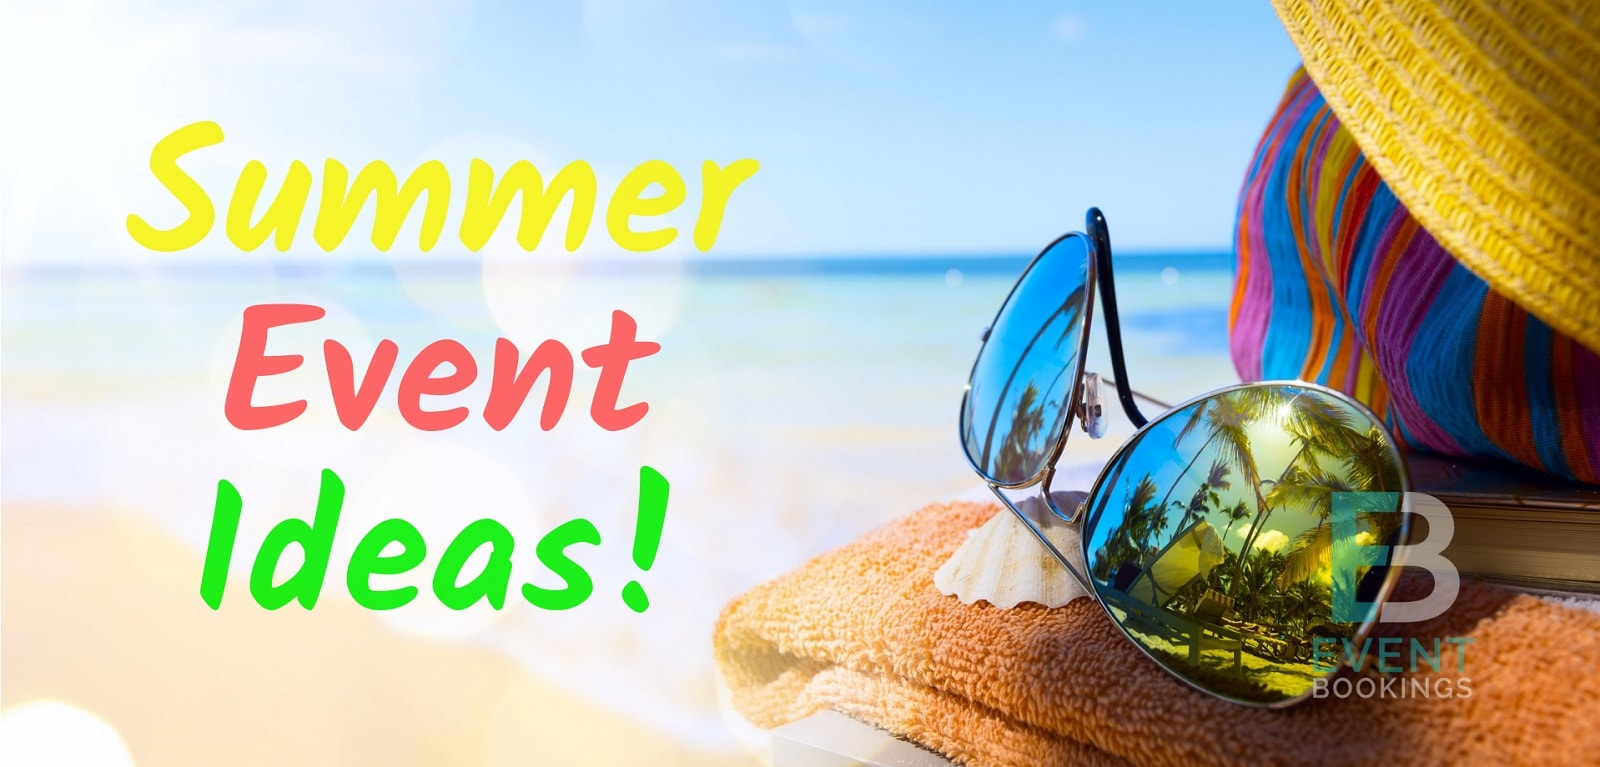 20+ Summer Event Ideas for the Ultimate Blast!